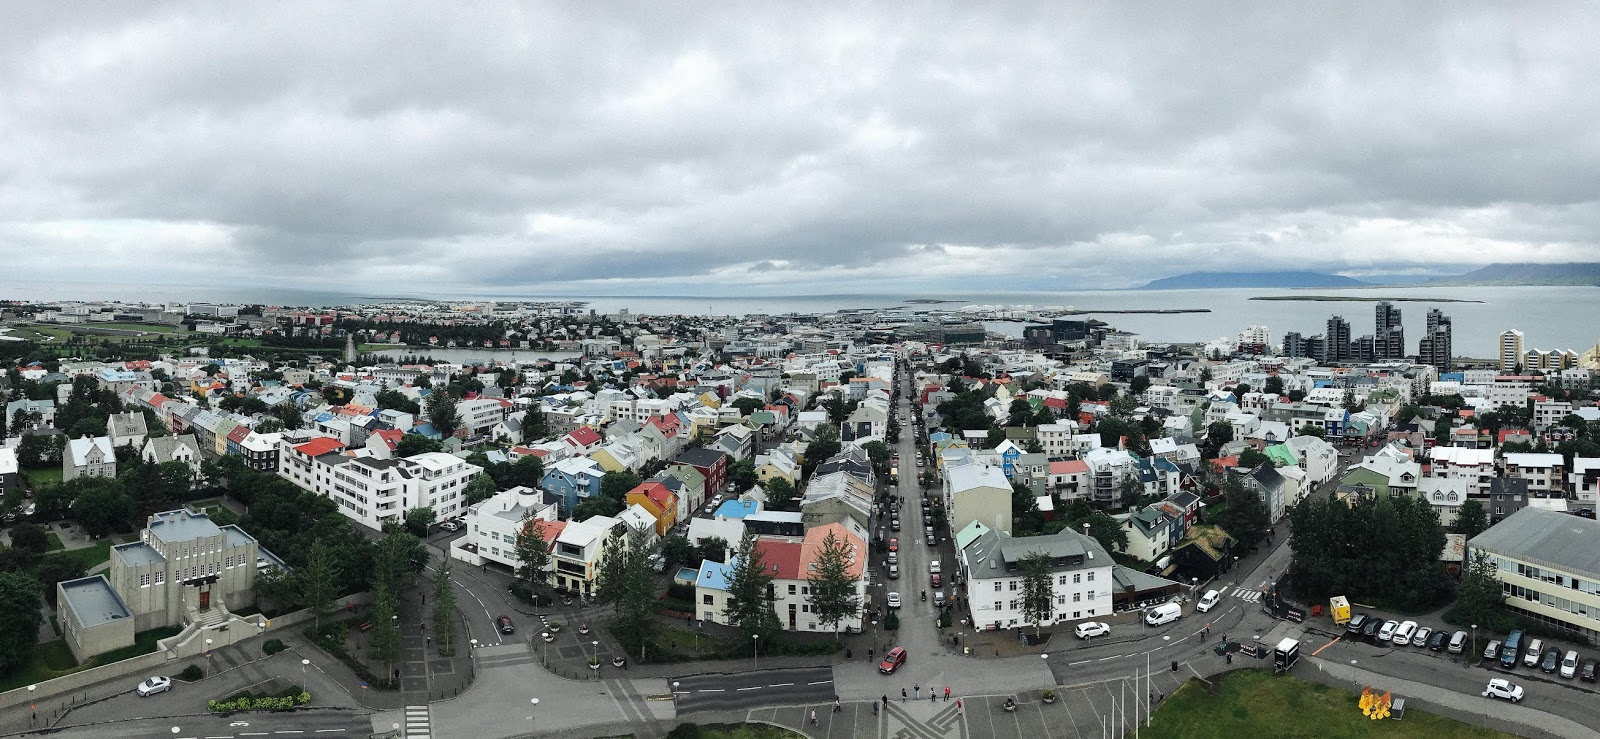 reykjavik travel iceland tips photography blogger fashion